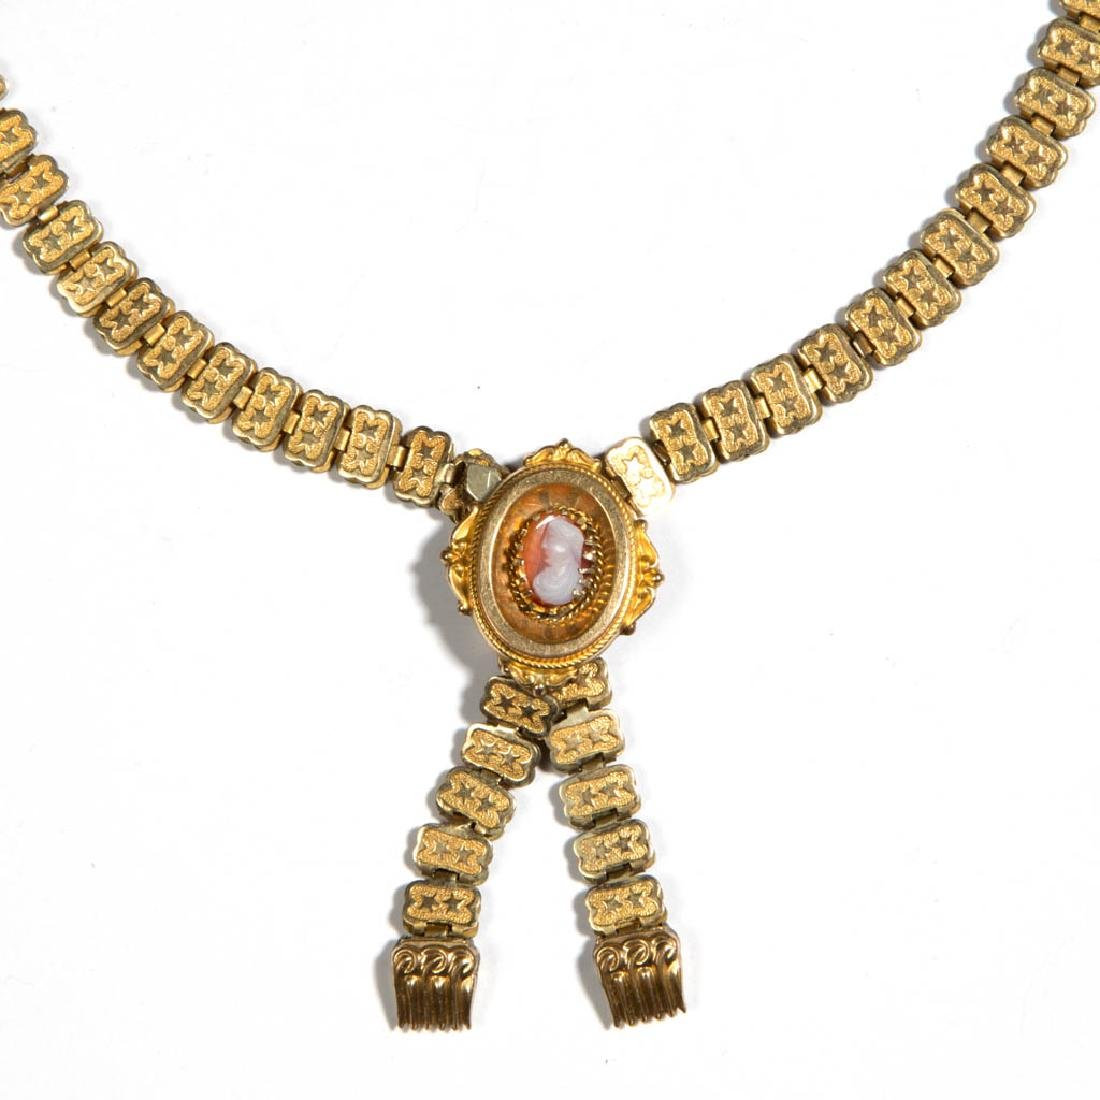 VICTORIAN GOLD-FILLED CAMEO NECKLACE